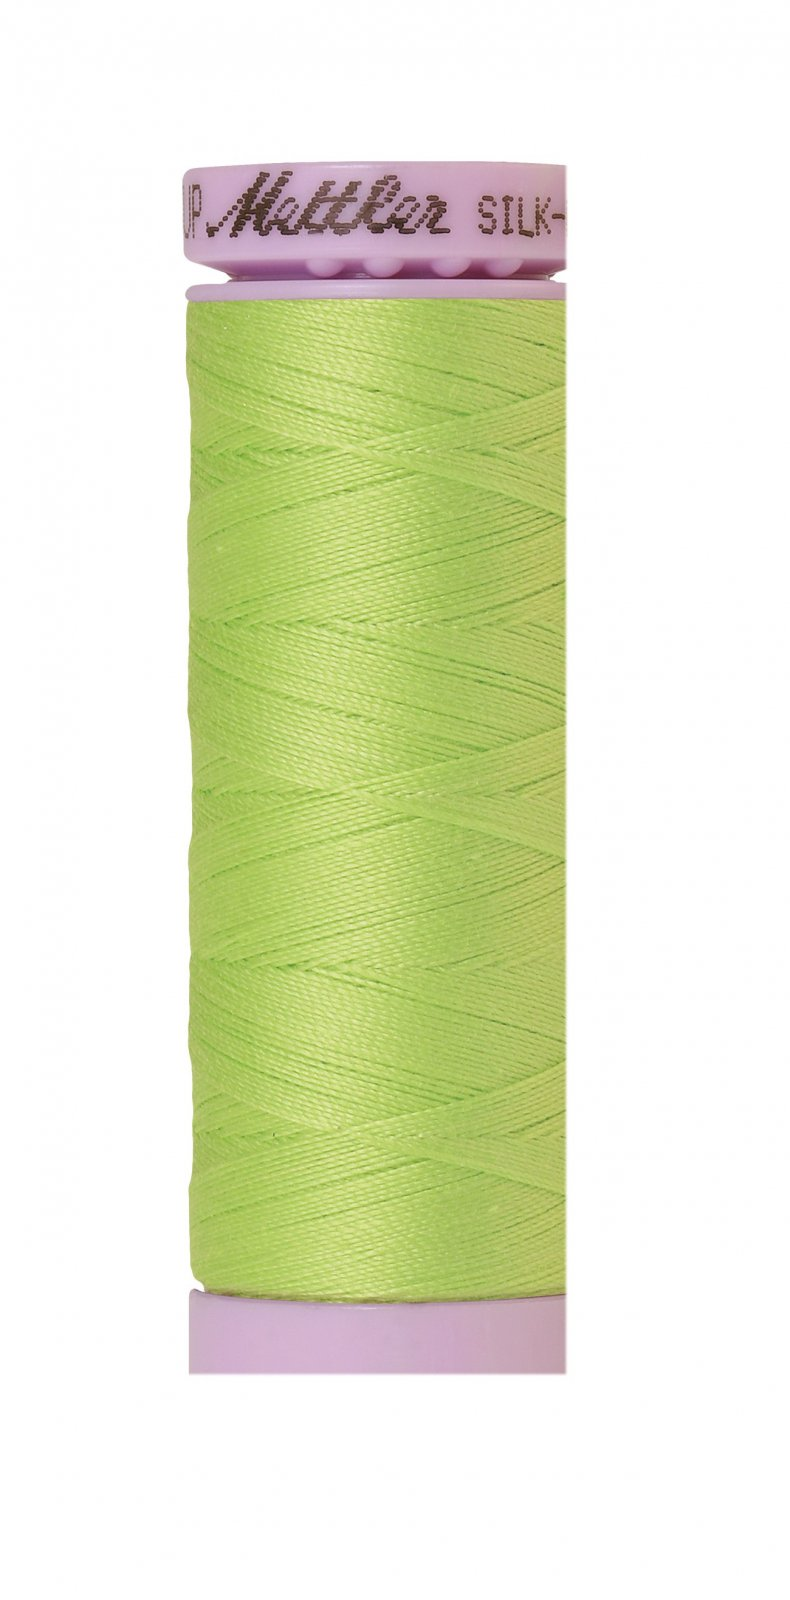 Silk-Finish 50wt Solid Cotton Thread 150M/164yd Bright Lime Green